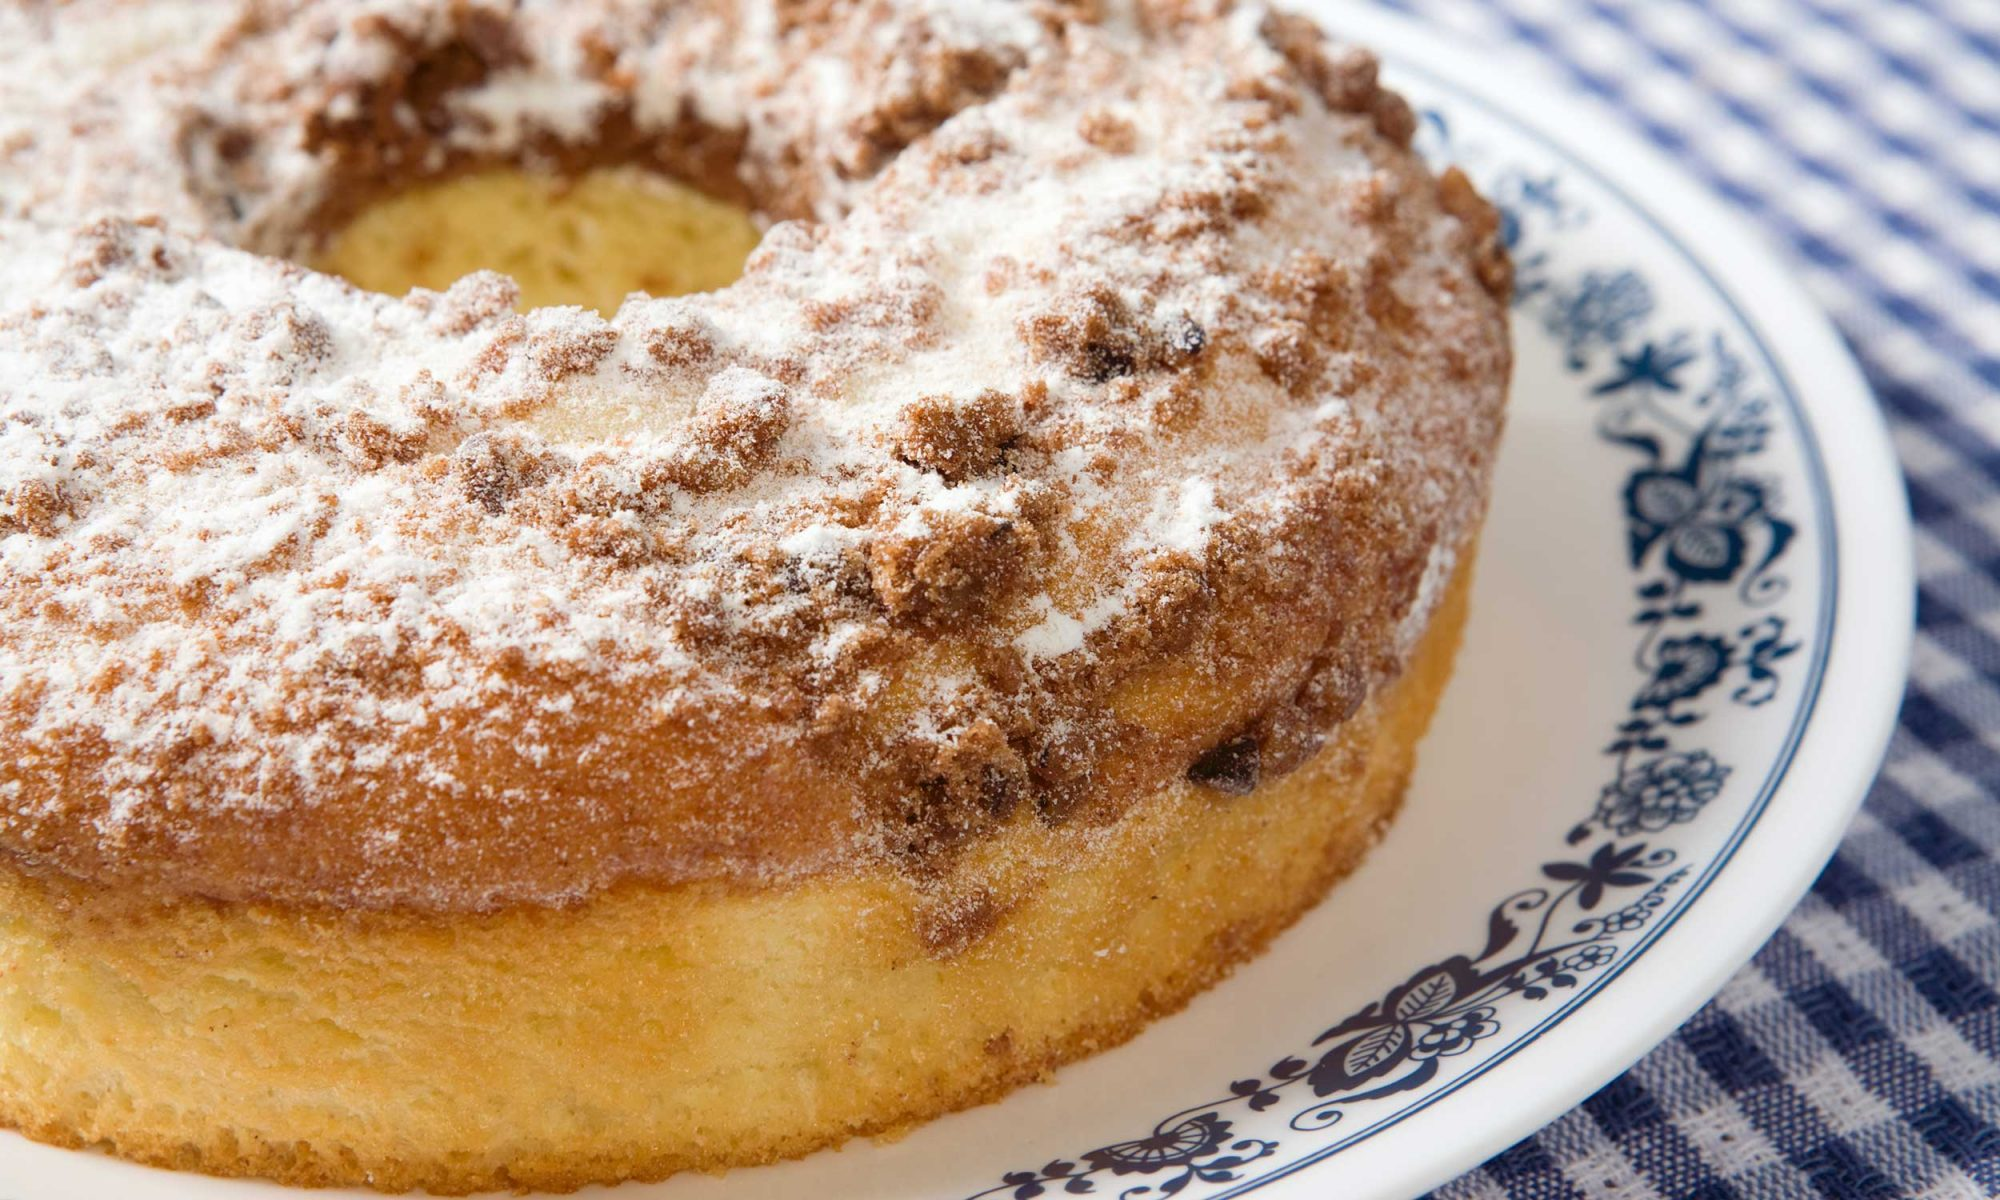 These Coffee Cake Recipes Will Satisfy Any Sweet Tooth